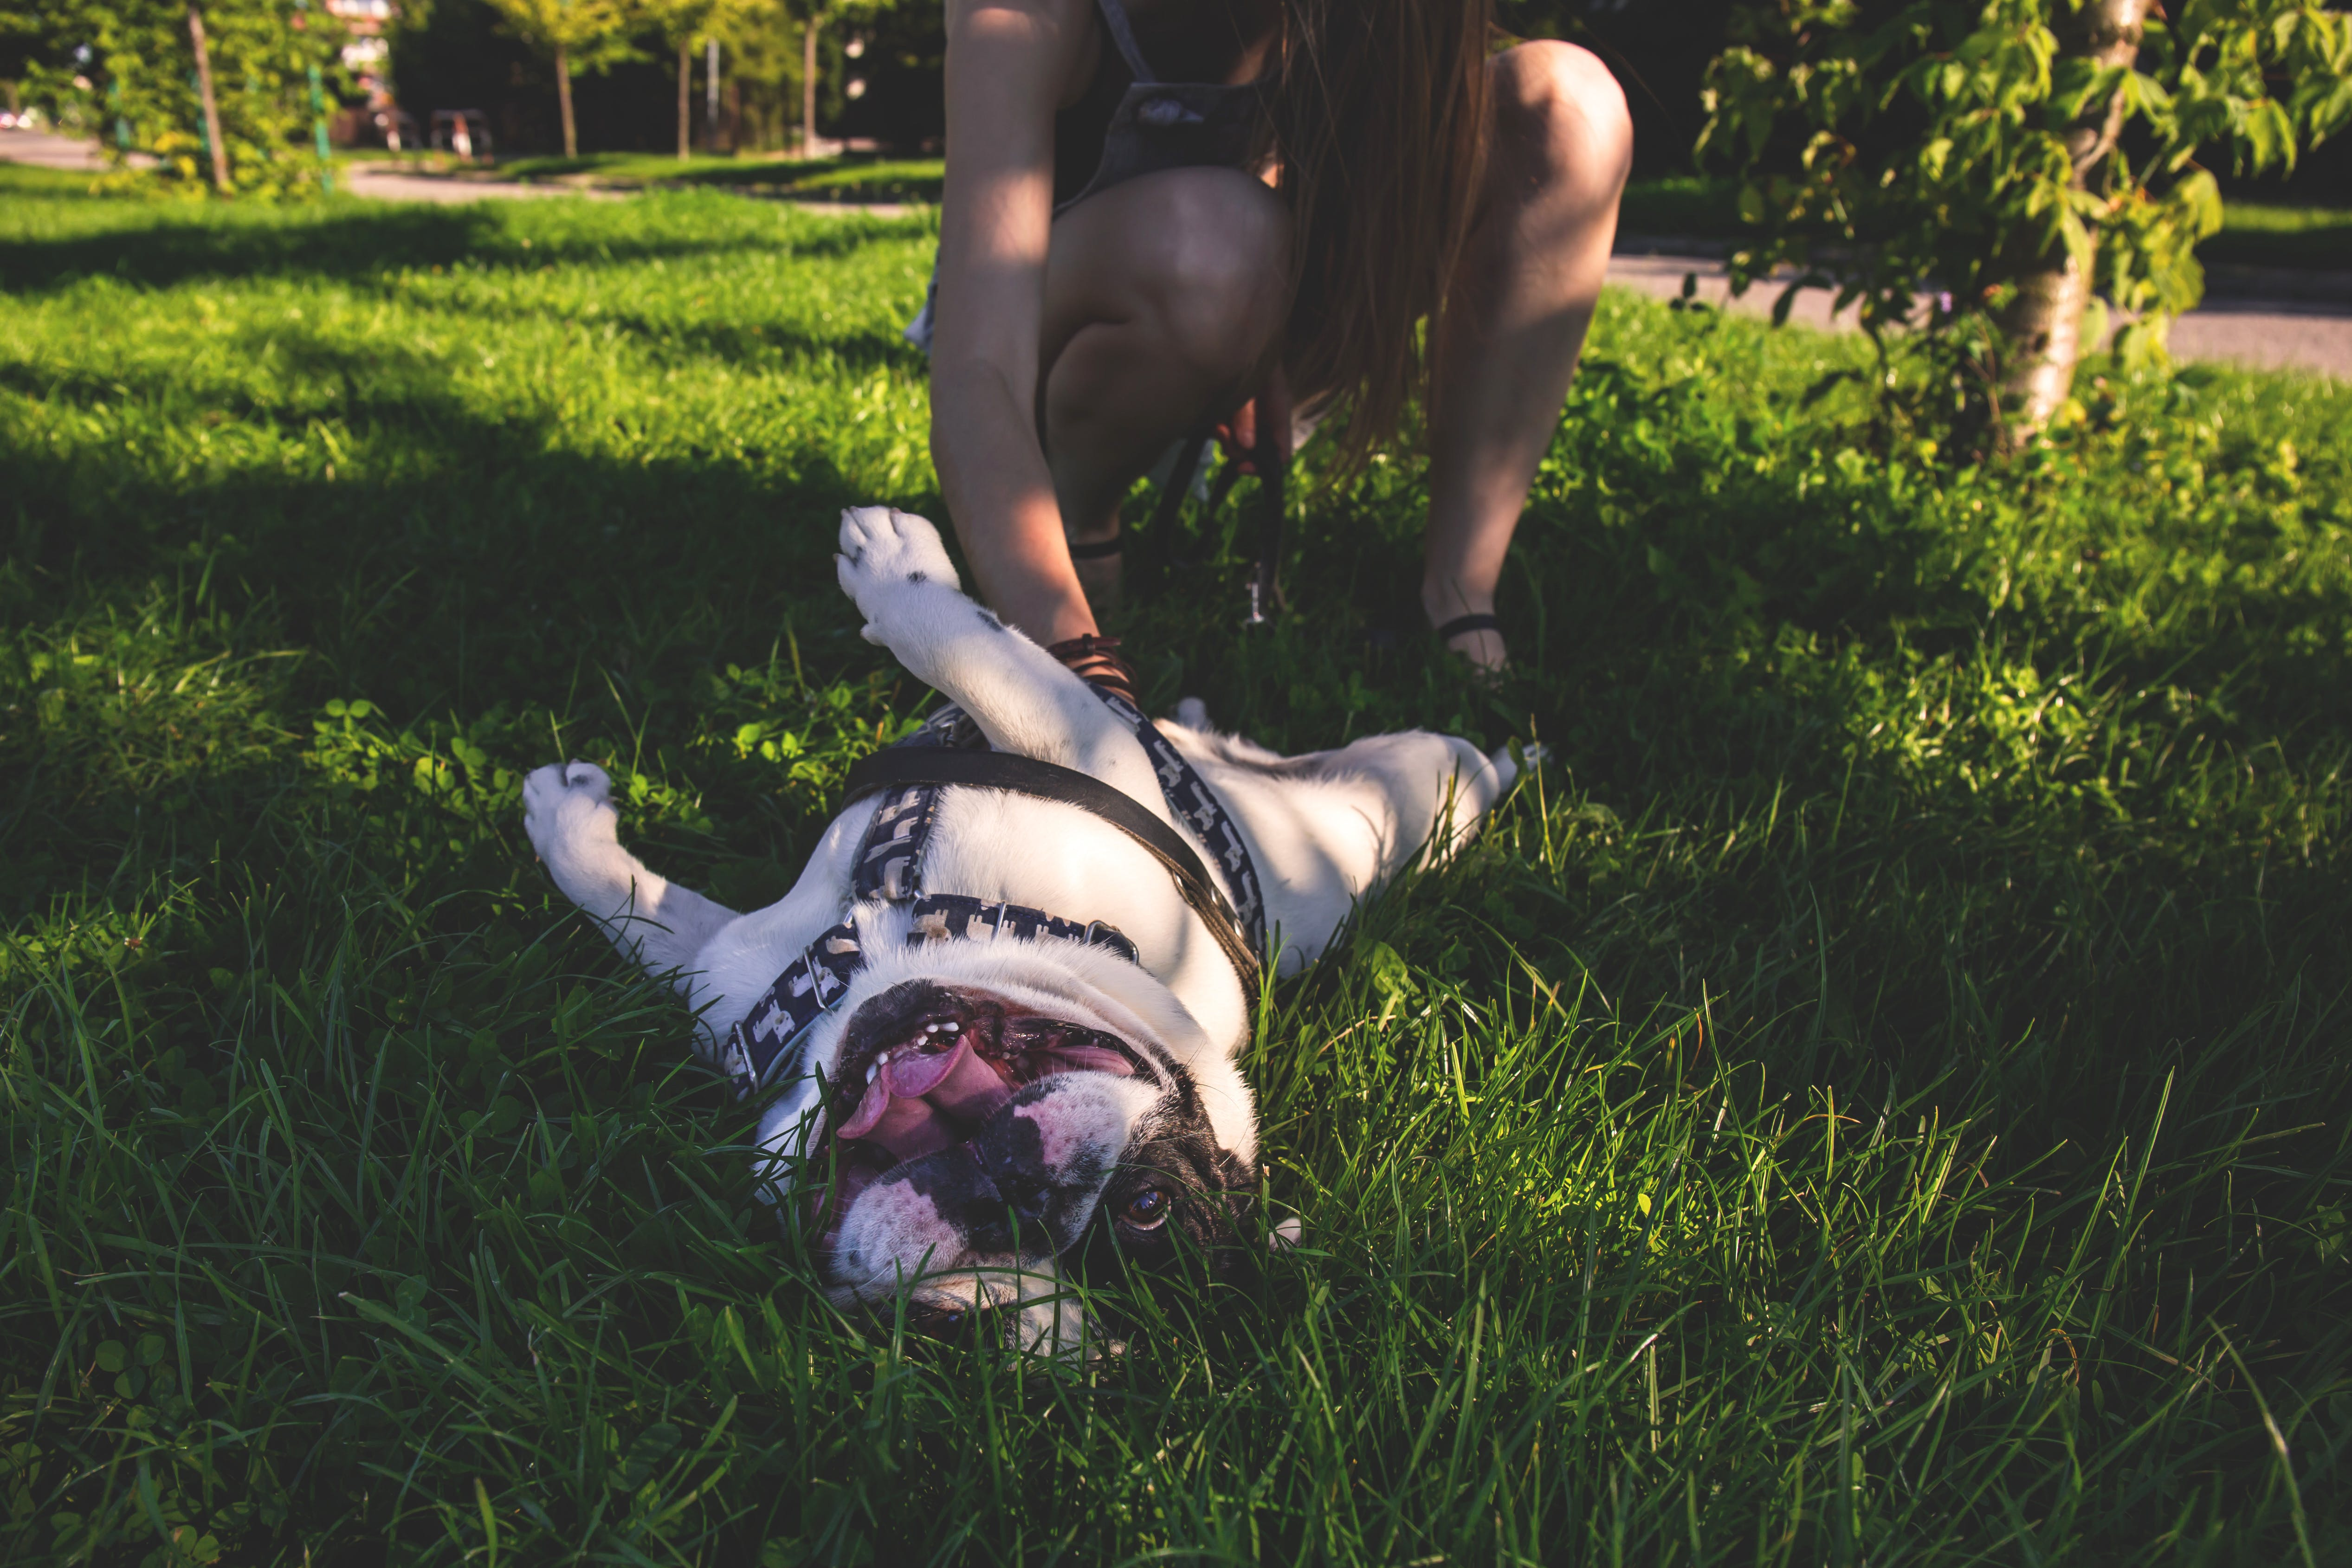 White and Brown American Bulldog Playing With Owner